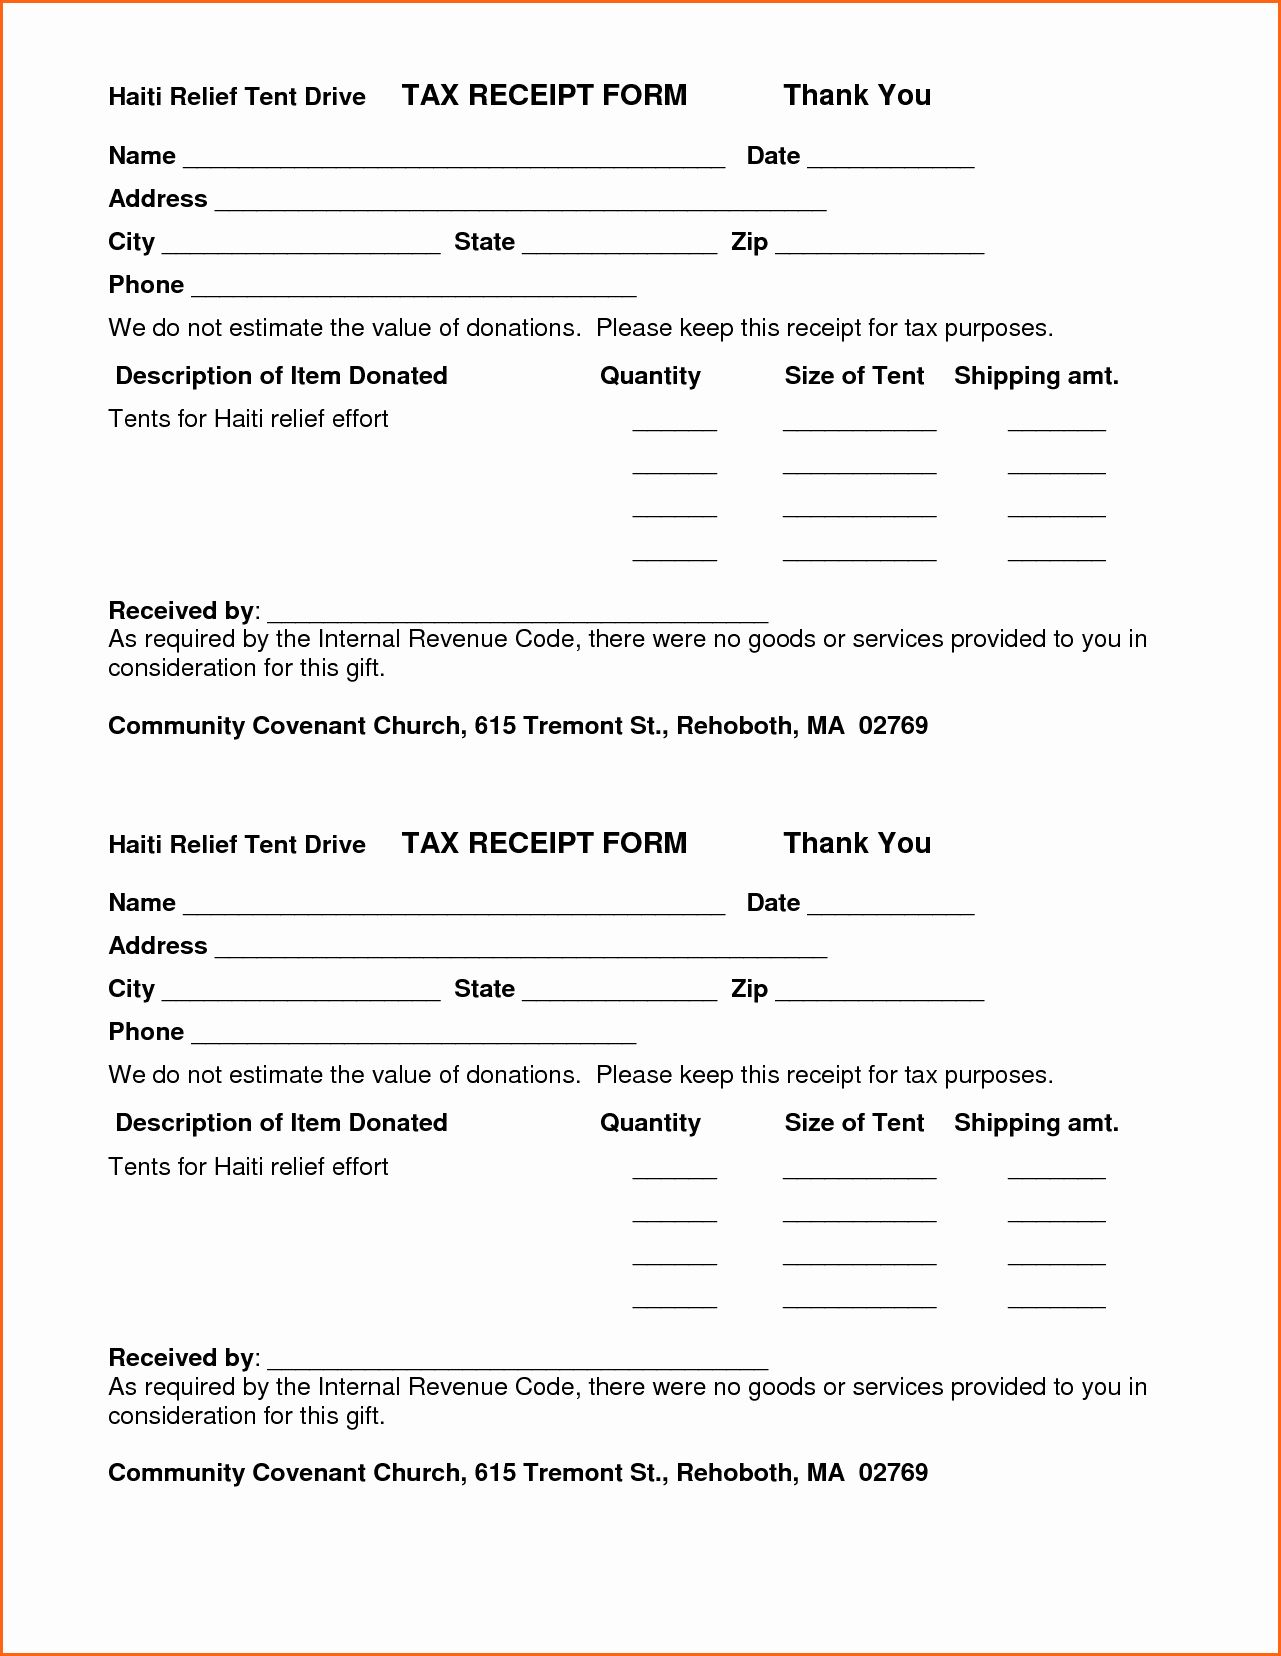 Donation Form For Tax Purposes Lovely 7 Church Donation Receipt Template Bud Template Letter Donation Form Resume Template Business Letter Template